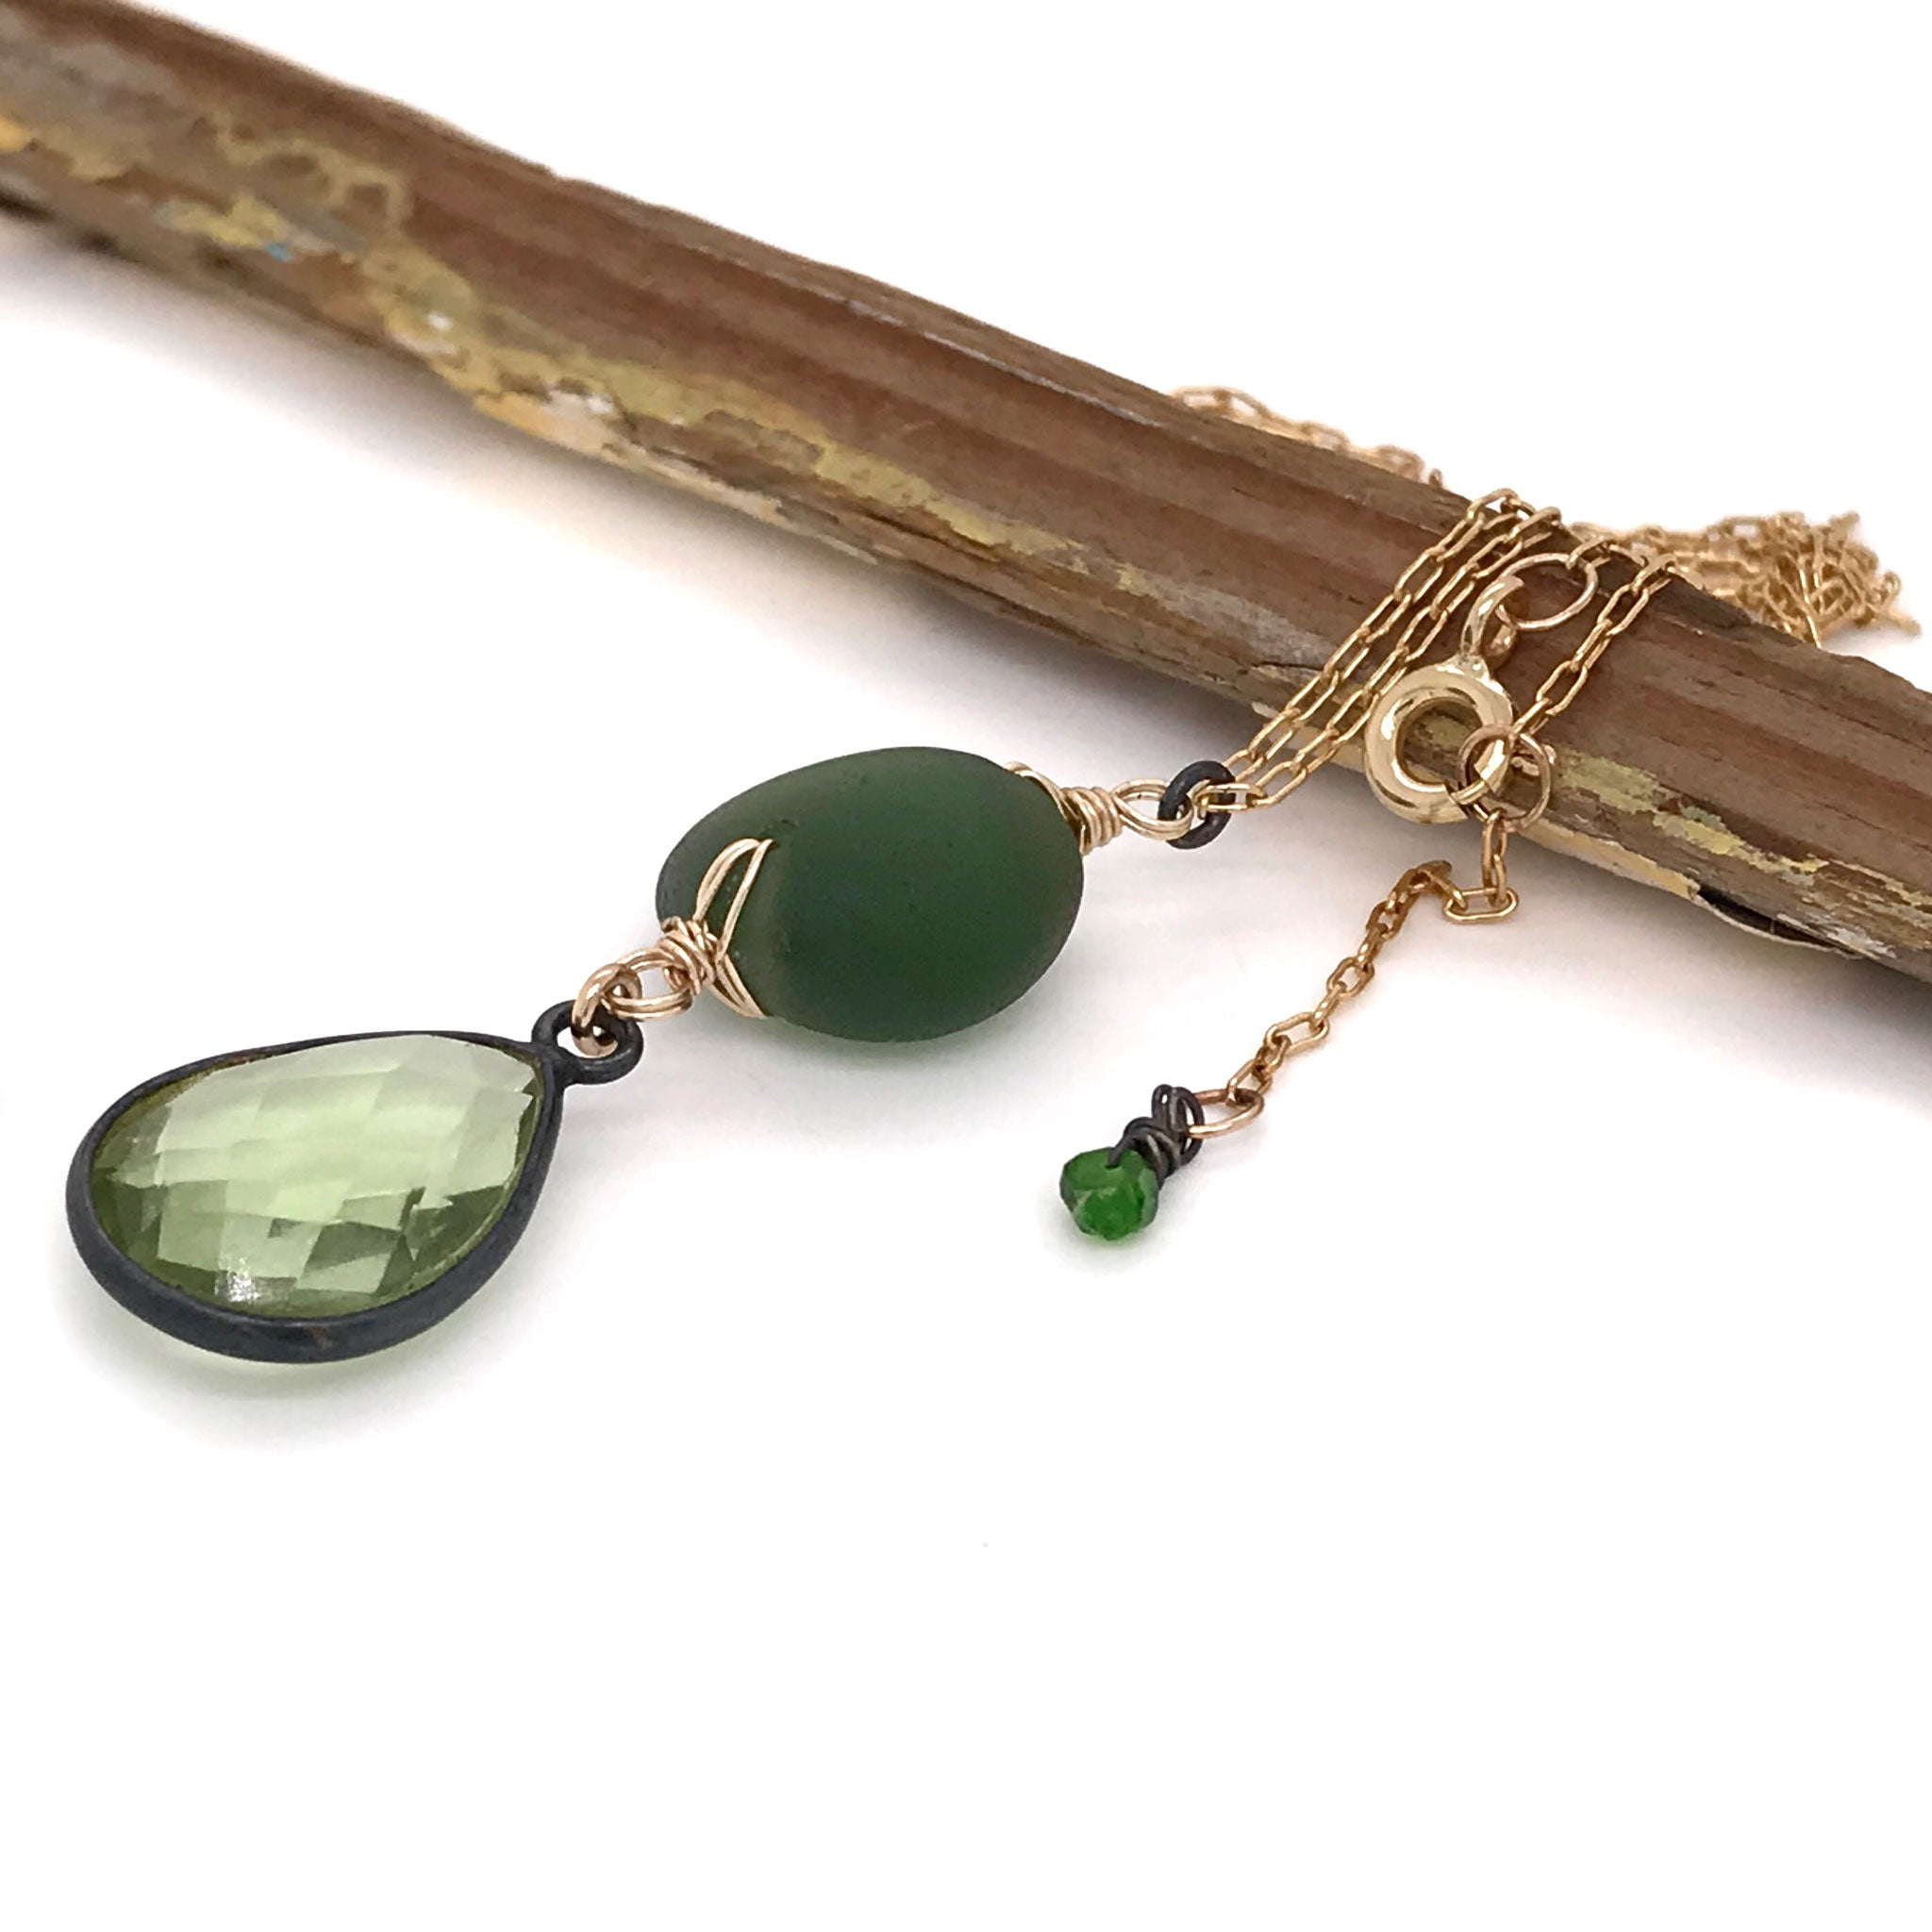 Opulent Teal Seaglass Necklace with Green Quartz – Gold